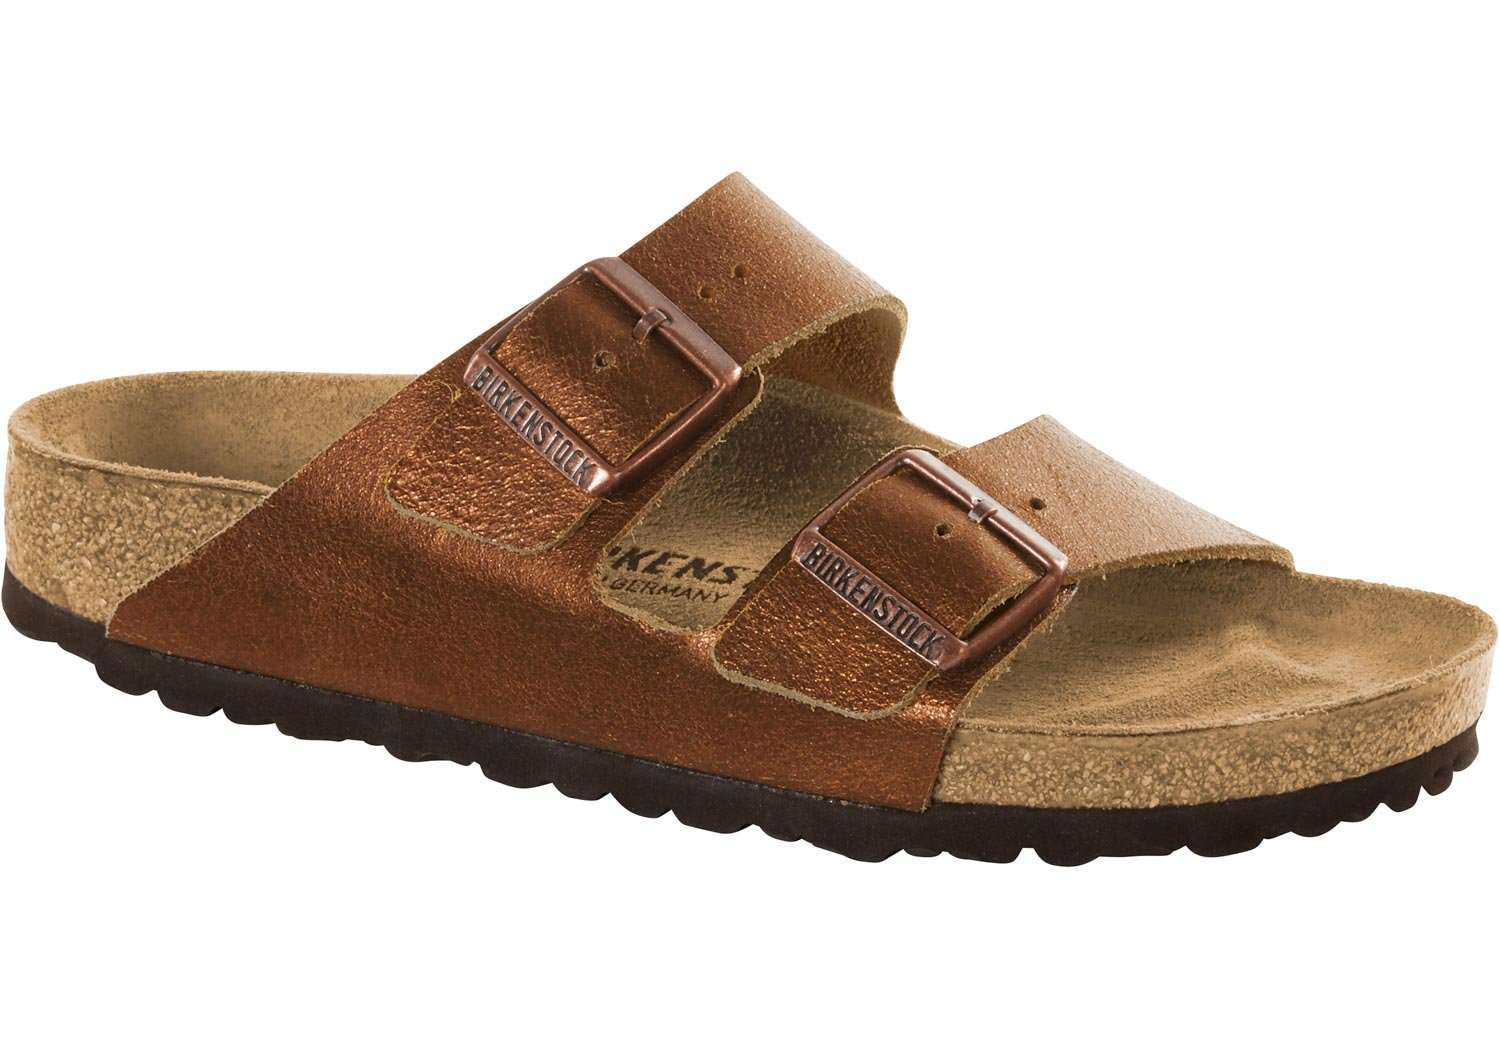 Birkenstock Arizona - Pantuflas de Cuero Mujer 37 EU|Marrón (Washed Metallic Antique Copper Washed Metallic Antique Copper)